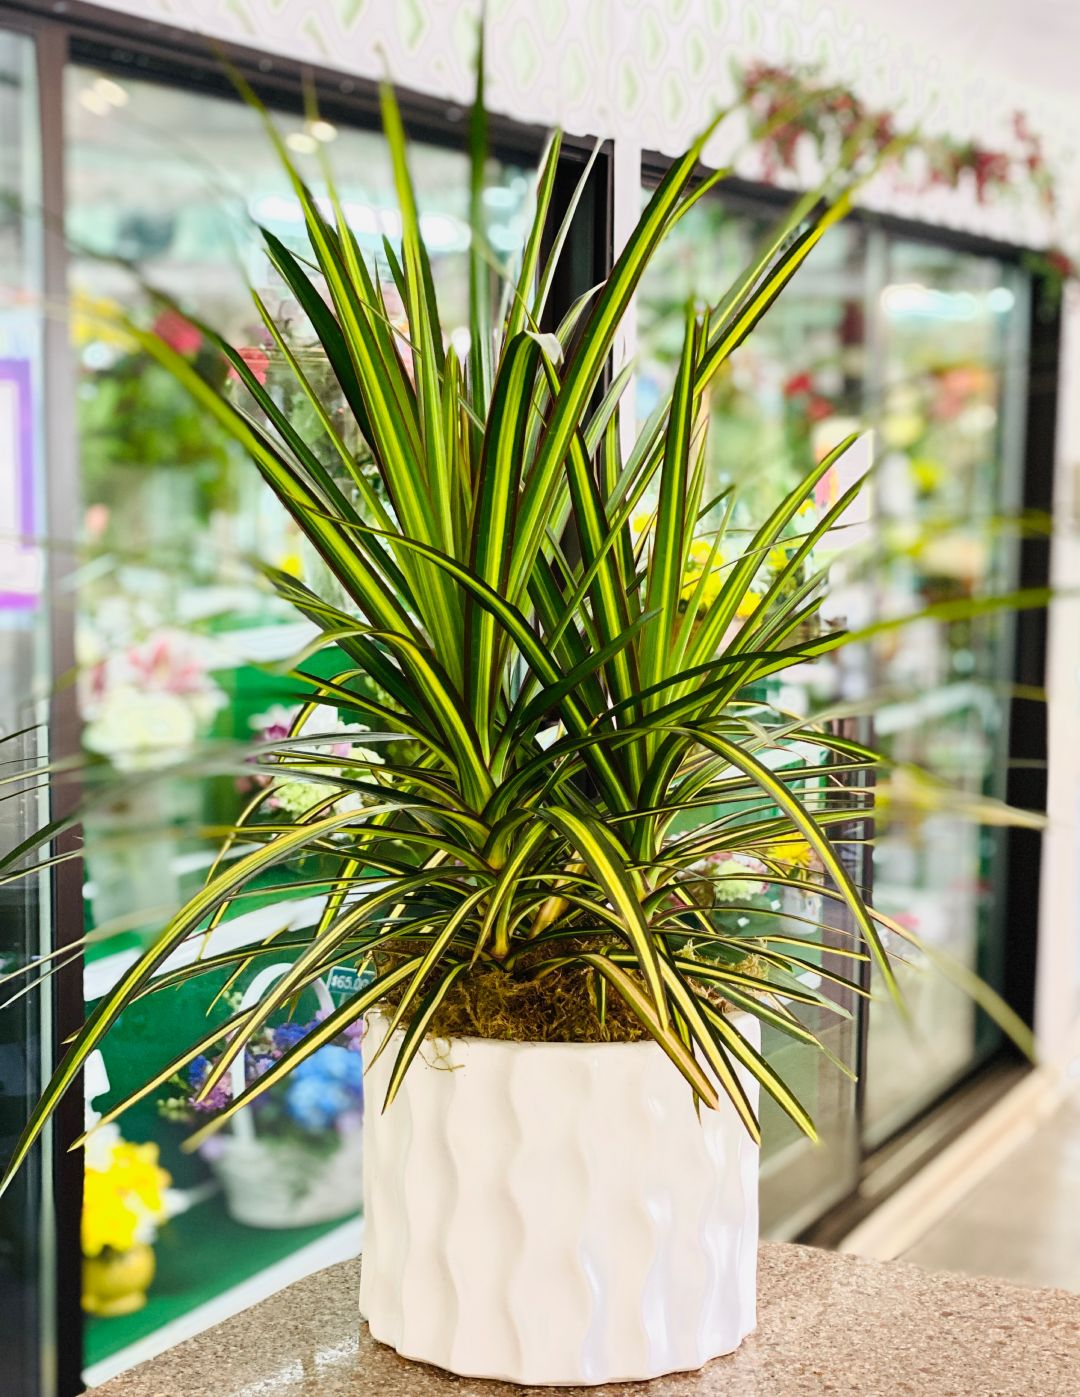 Dracena in Wave container